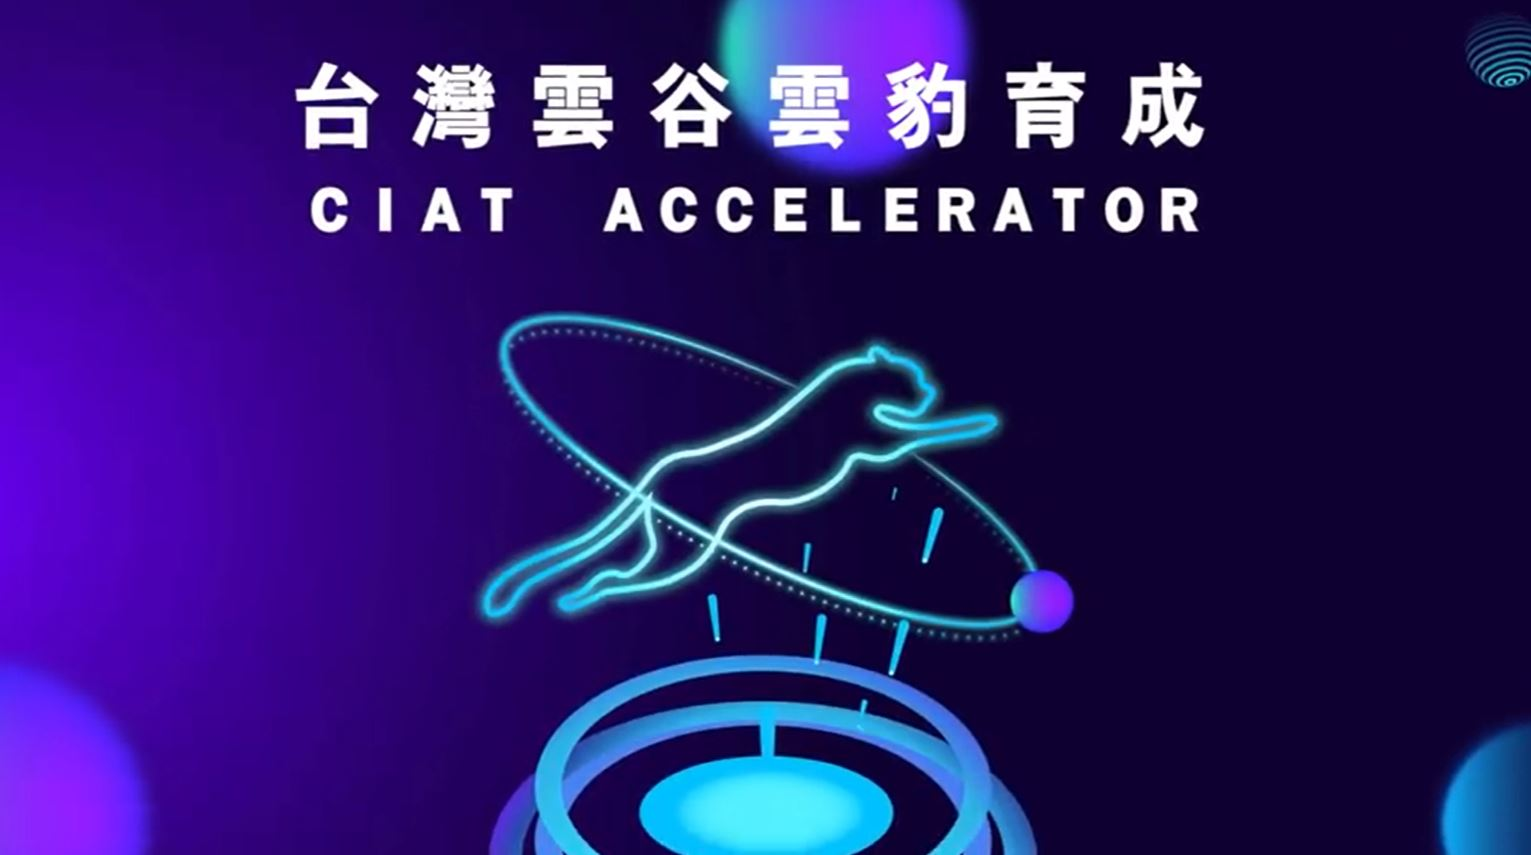 9th CIAT Accelerator Program OPENS for Applications